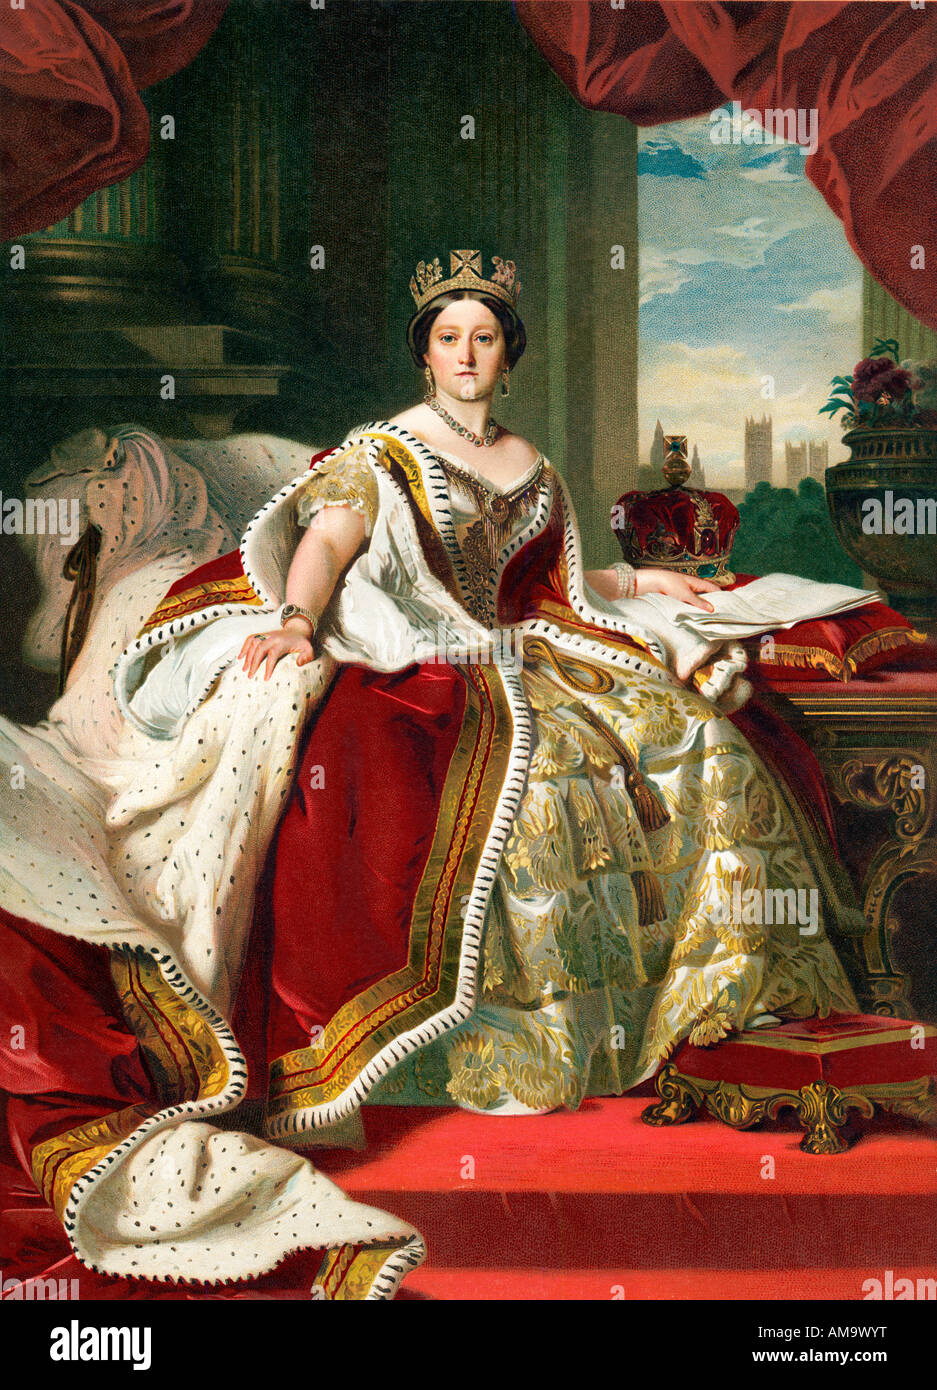 Queen Victoria Winterhalter 1859 portrait of Her Majesty dressed in the Coronation robes - Stock Image